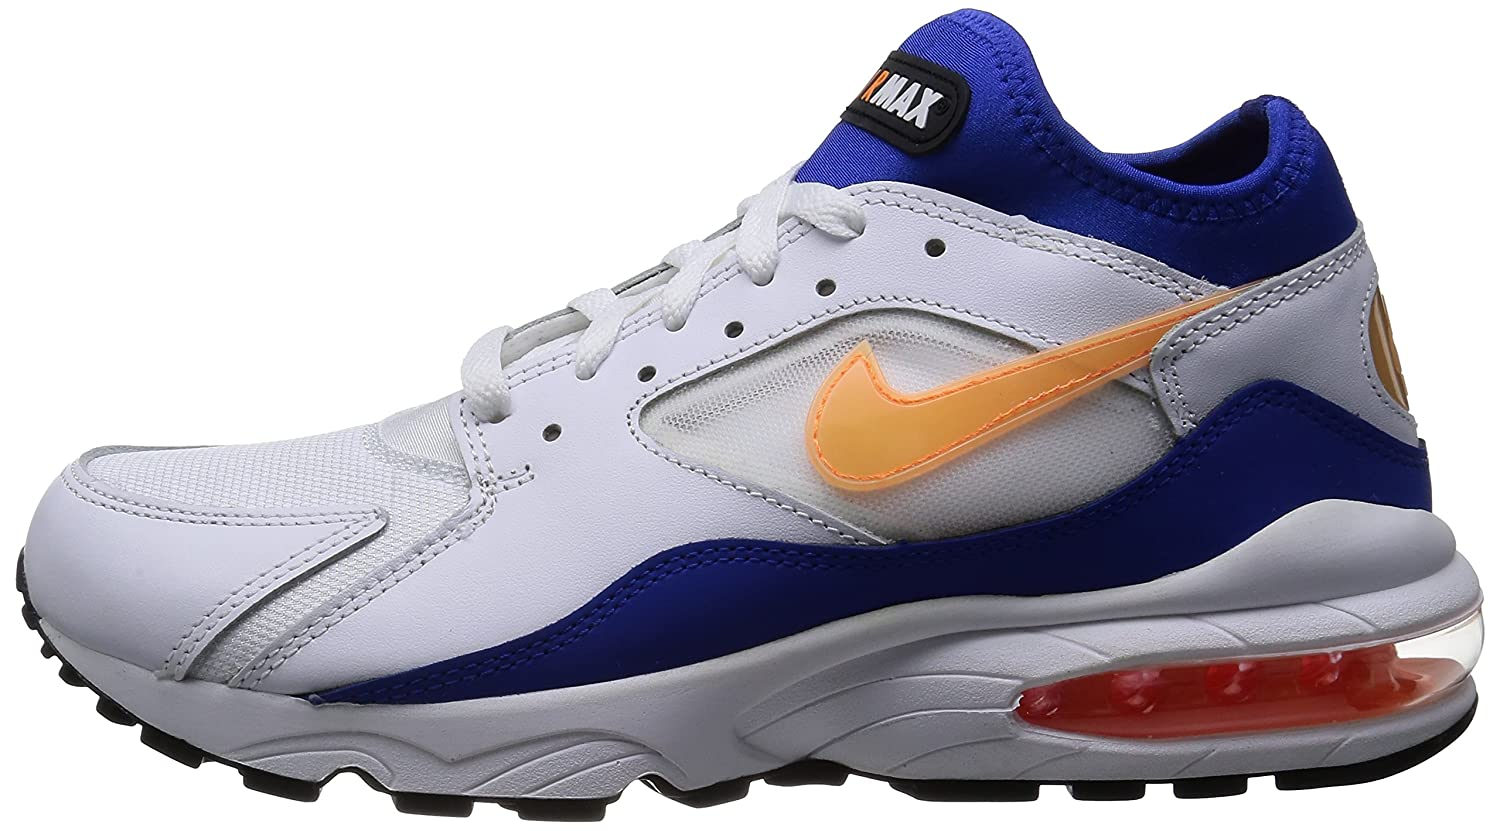 eyjte Nike AIR MAX 93 White Blue Leather Men Sneakers Shoes: Amazon.co